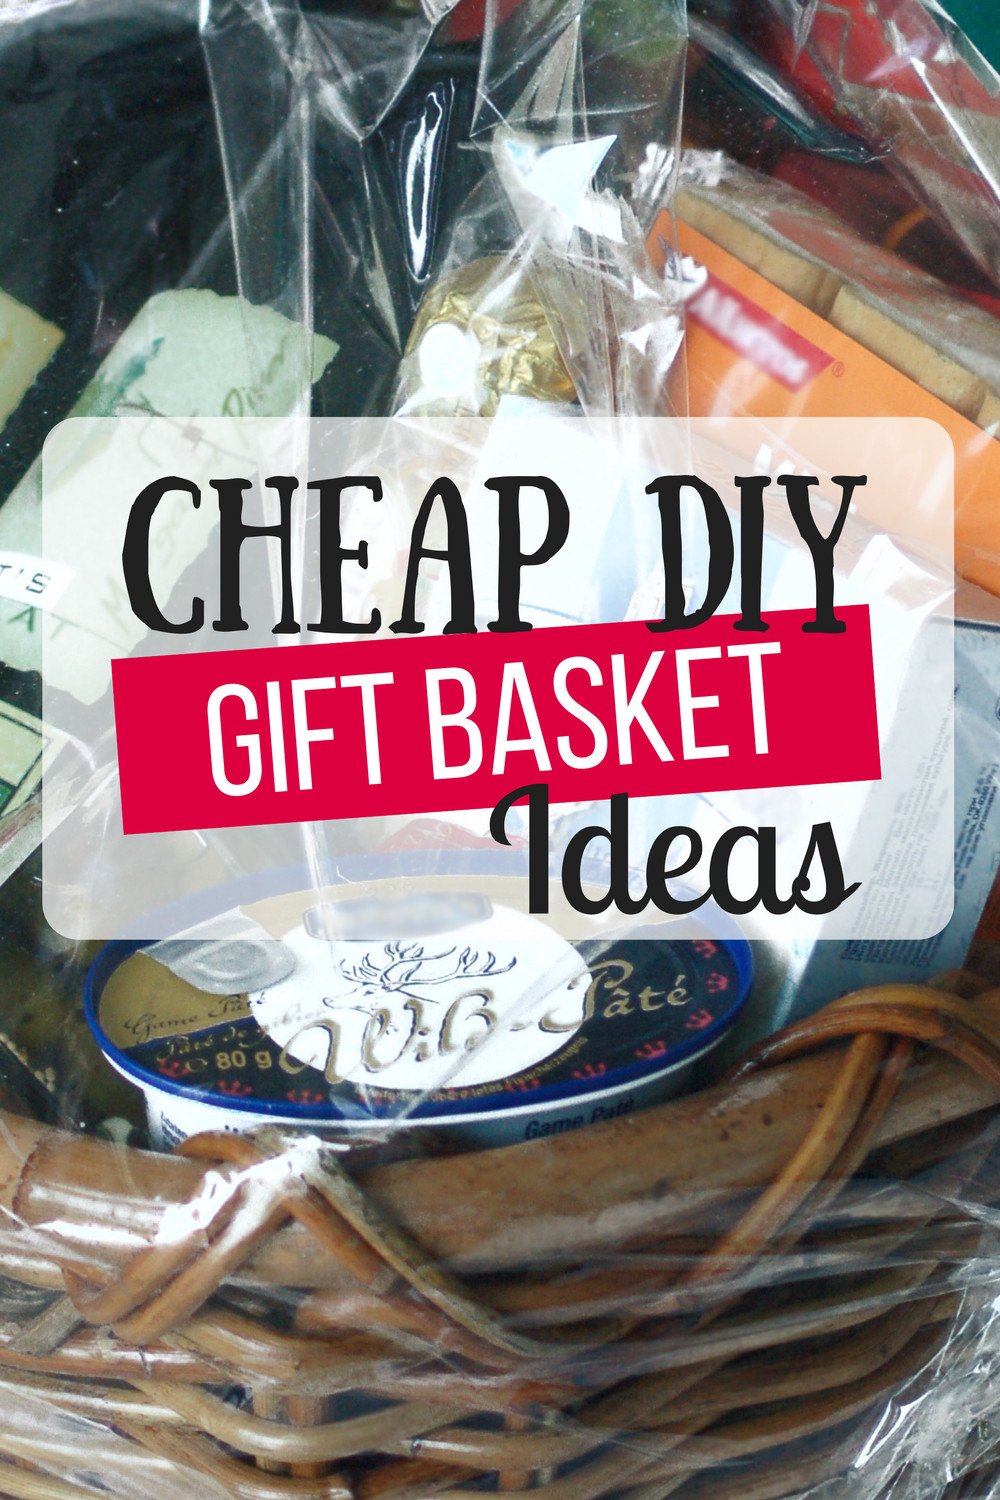 Homemade Christmas Gift Basket Ideas  Cheap DIY Gift Baskets The Busy Bud er